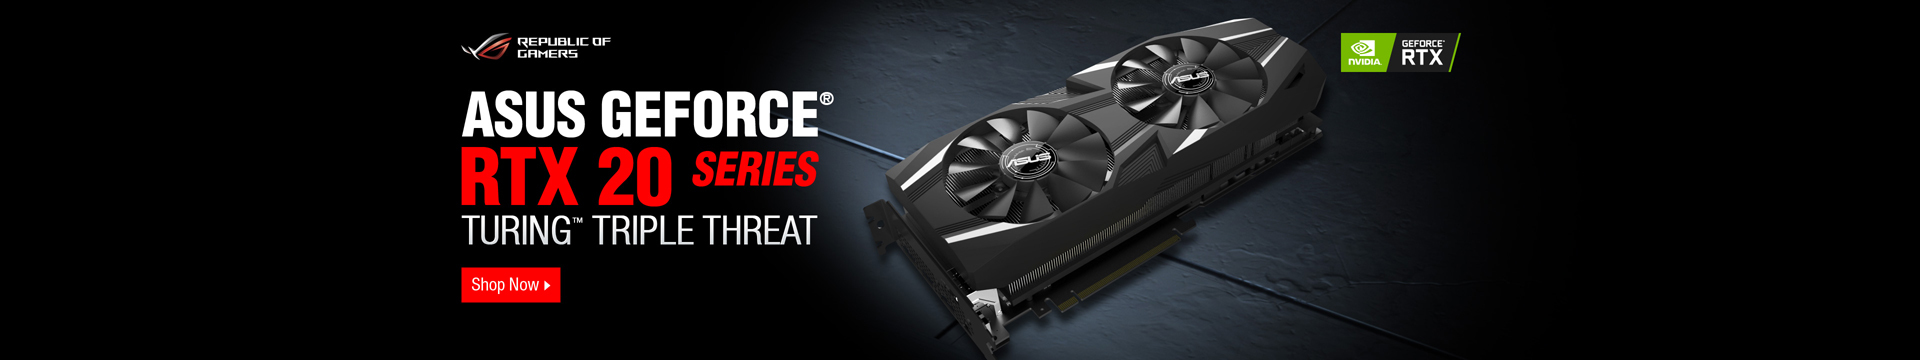 ASUS GEFORCE® RTX 20 SERIES